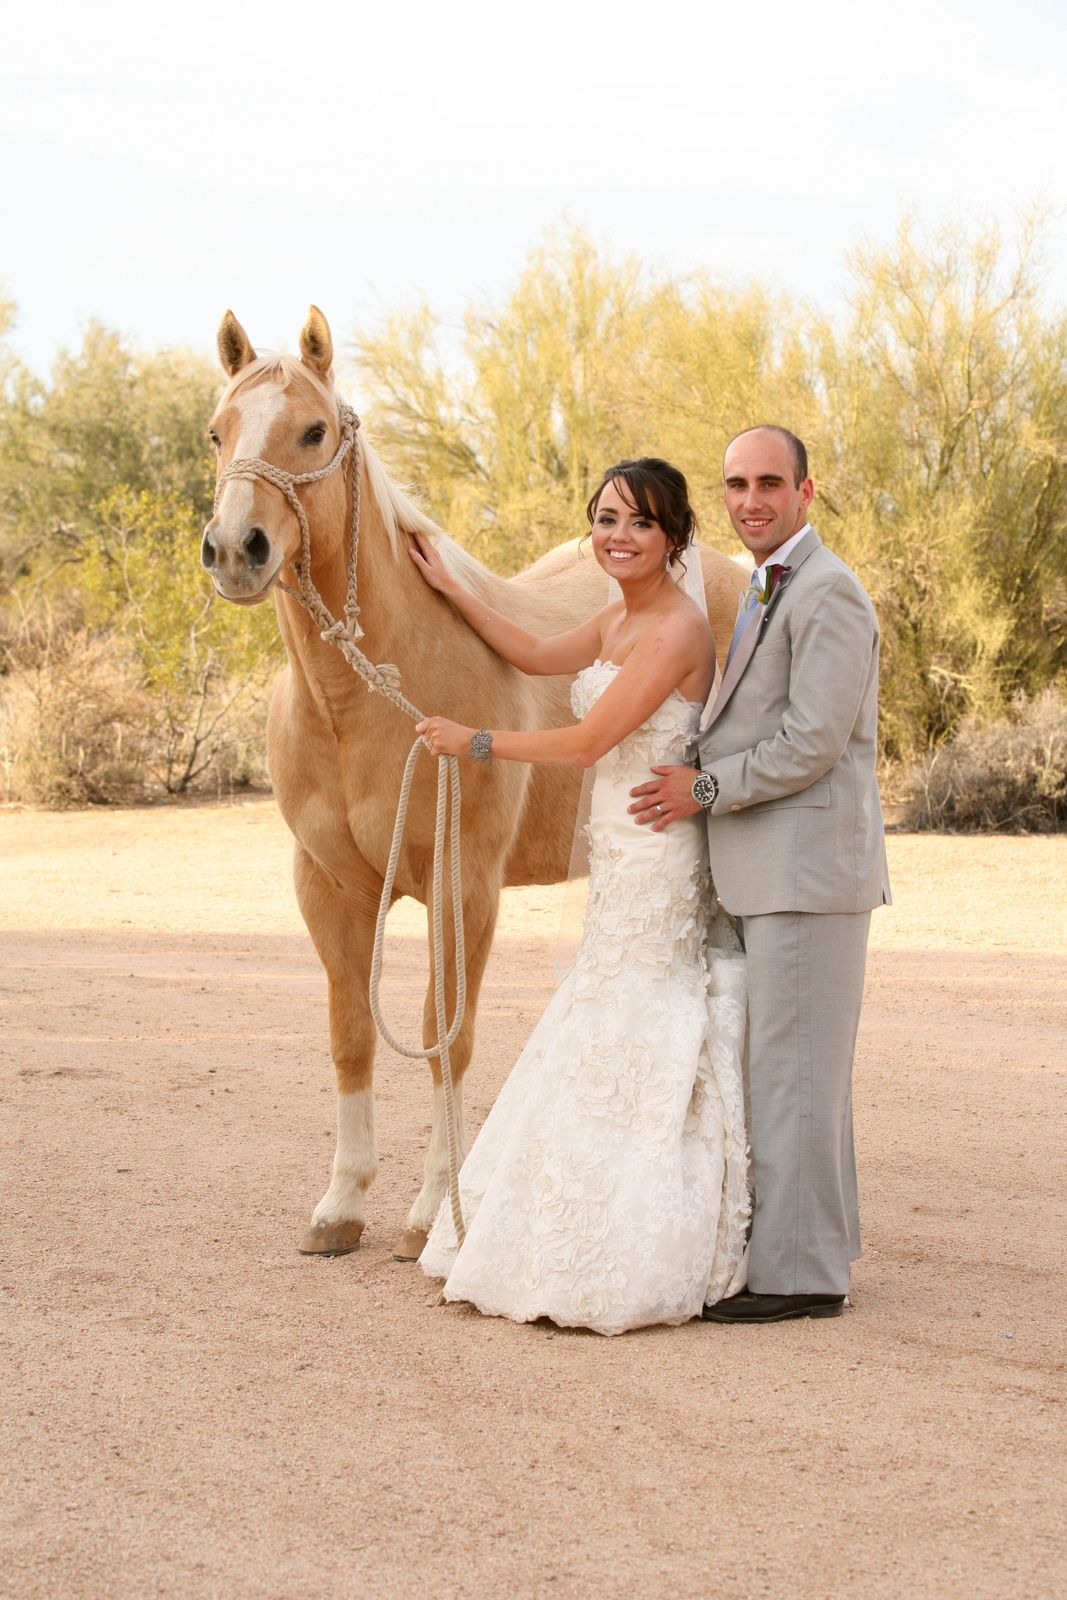 Western Weddings A I Want Horse Photo: Horse For Western Wedding Dresses At Websimilar.org